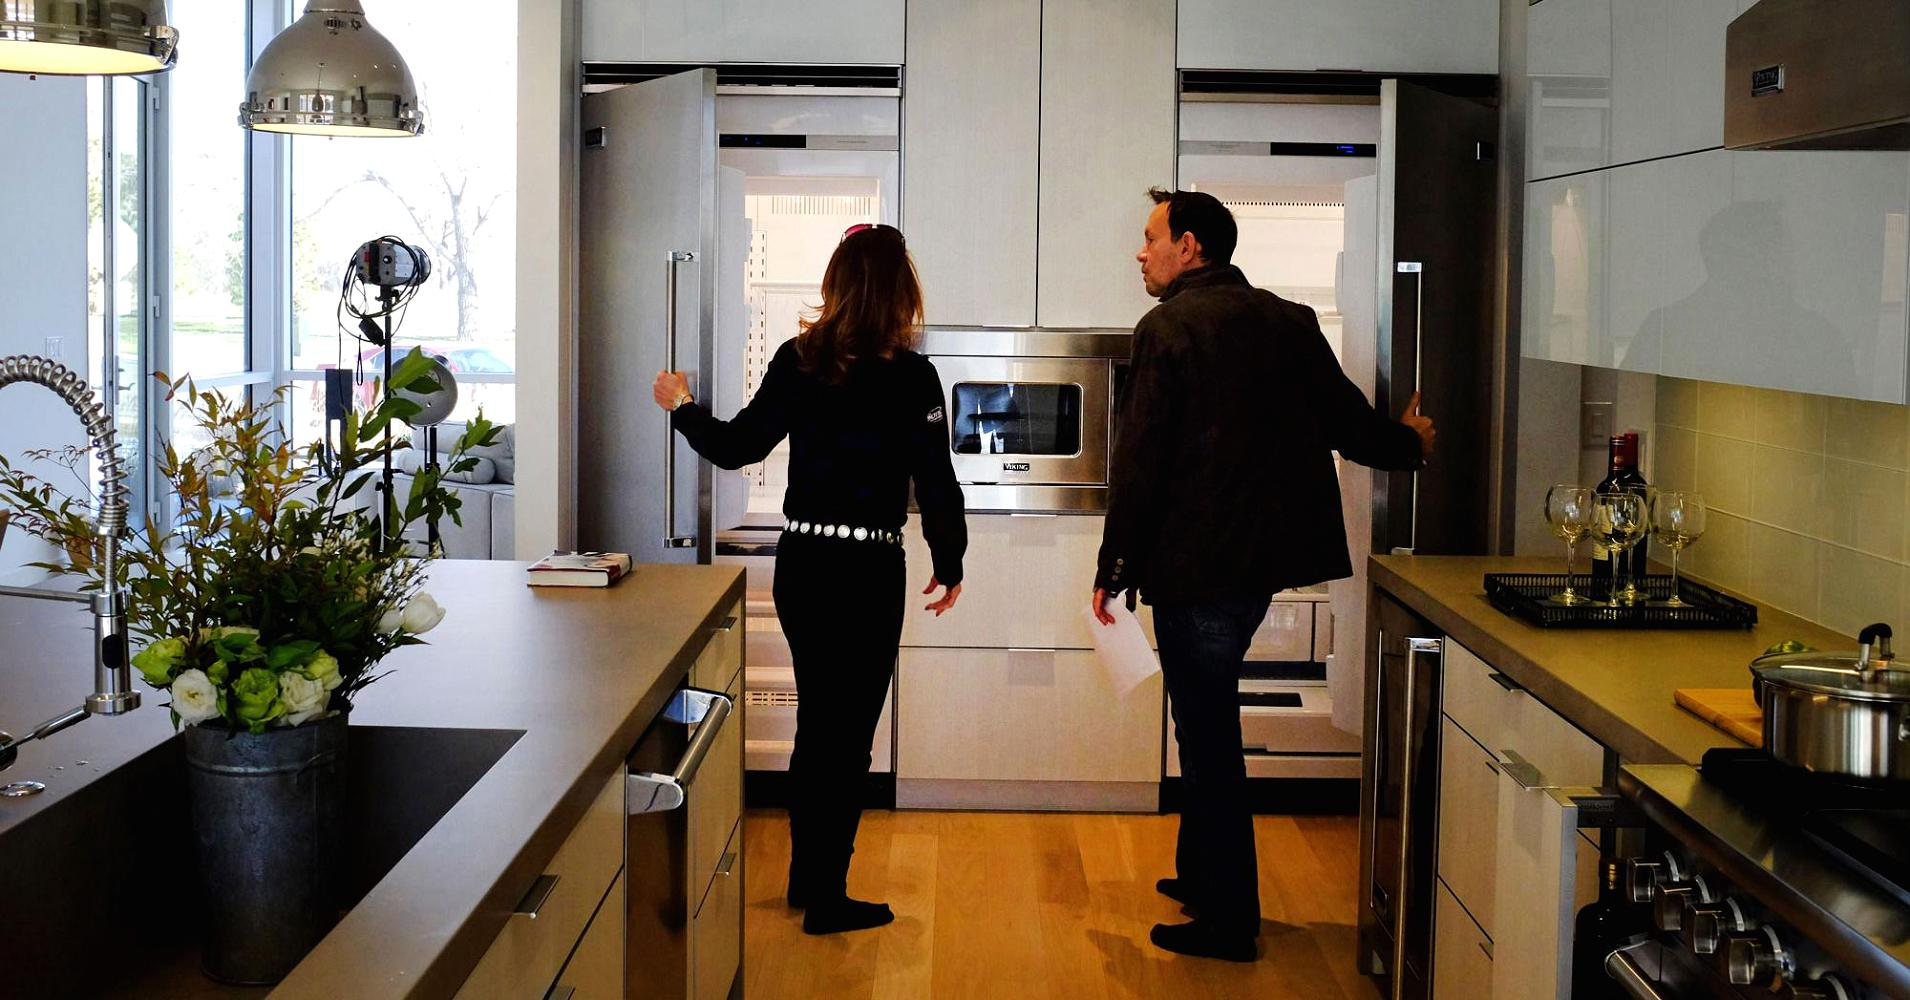 Tired of rising rent? Maybe you should consider becoming a landlord